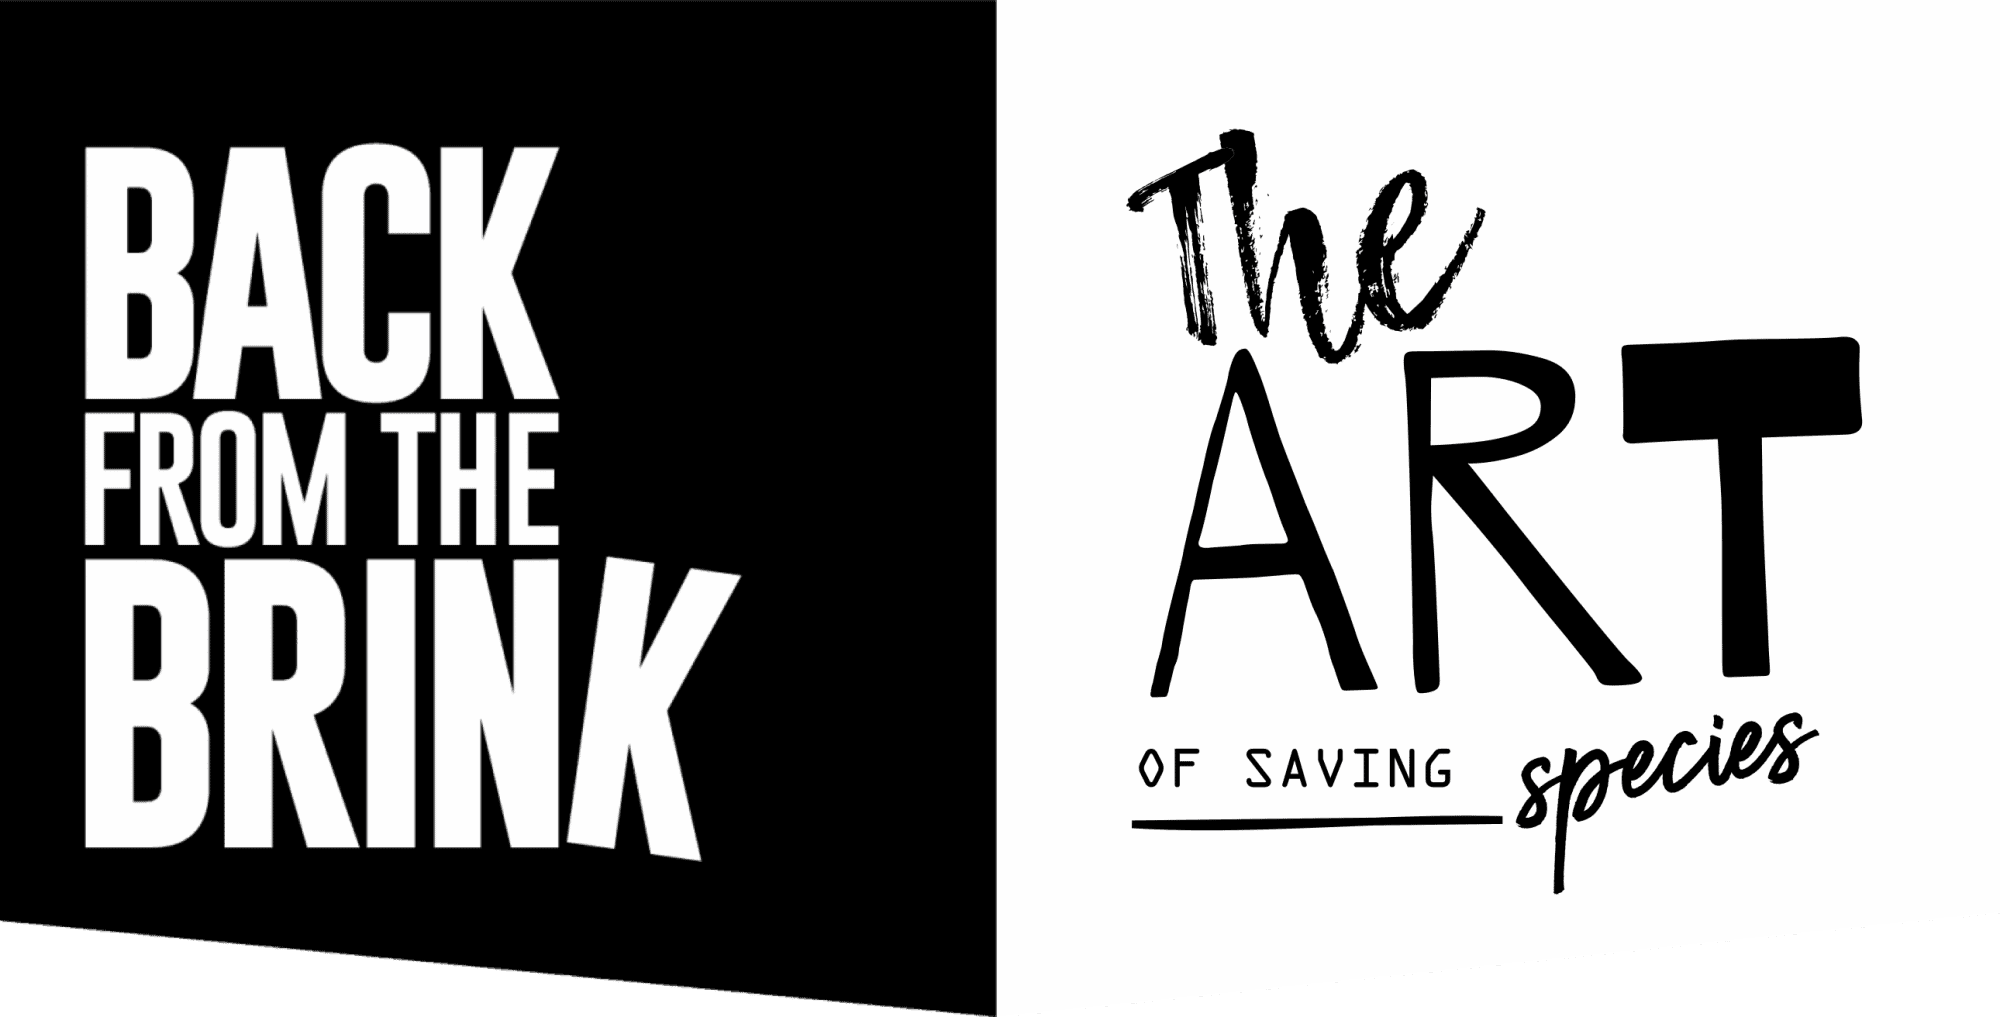 The_art_of_saving_species-Back_from_the_brink-logo_large